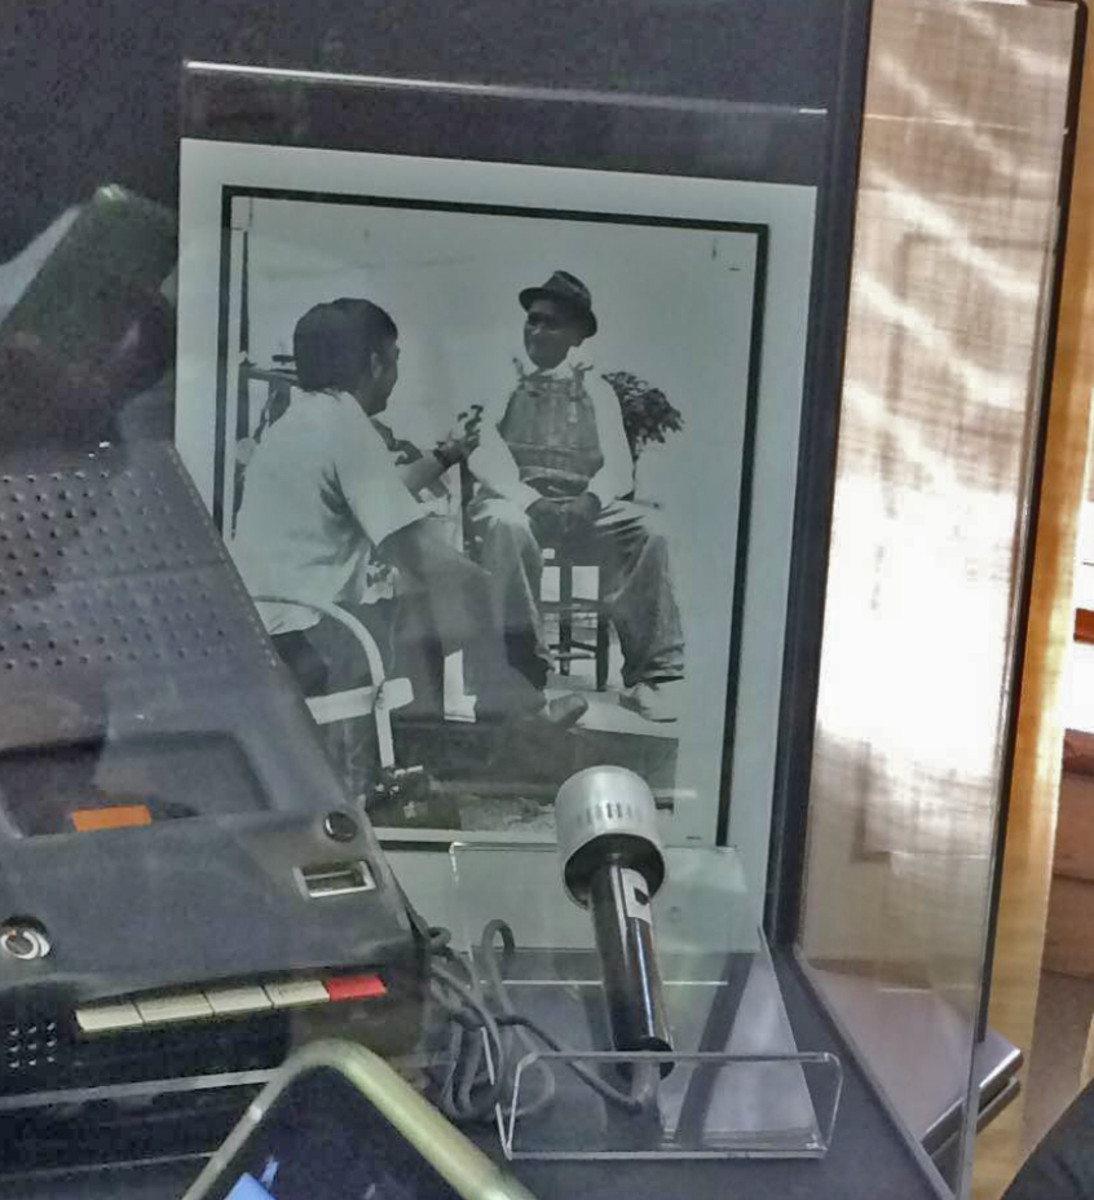 Dr. Anthony Paredes, the University of Florida's principal interviewer for the Porach Band of Creek Indians in Atmore, Alabama, which was one of the Tribes included in the original collection, interviewing one of the Creek Indian participants. The display case shows the actual microphone and tape recorder used in the photo. (Photo courtesy of the University of Florida)